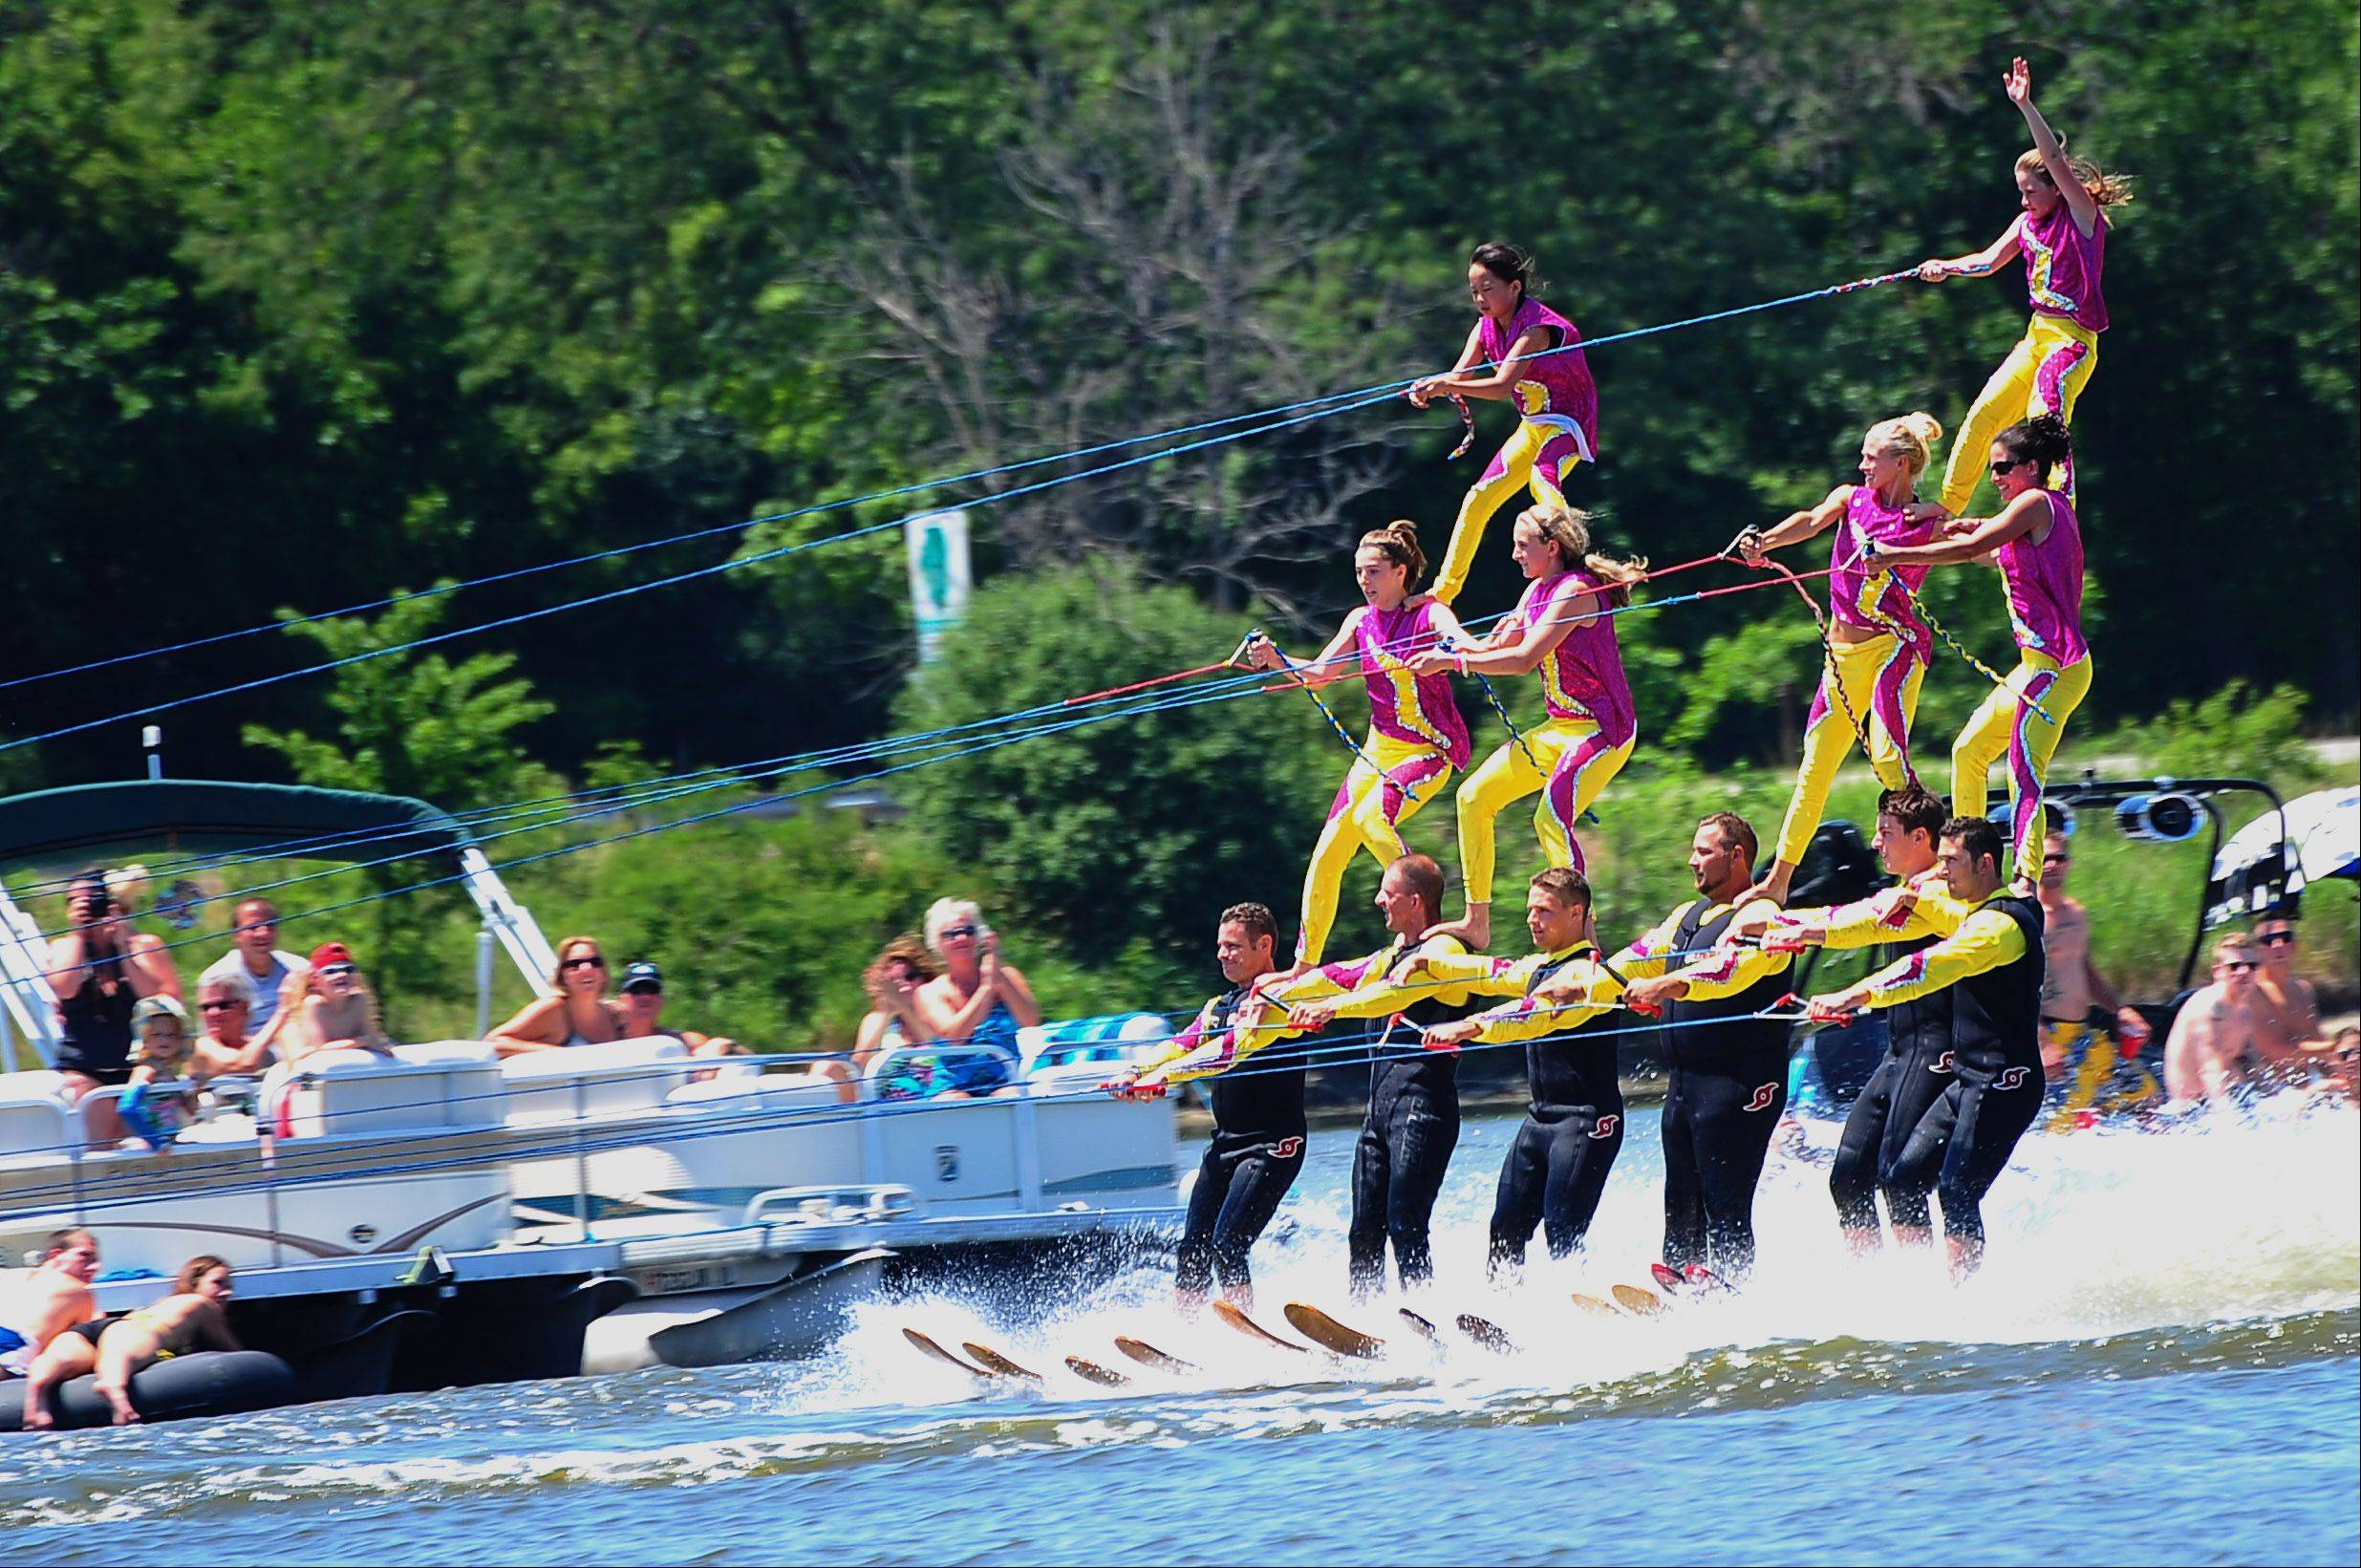 Members of the Wonder Lake Ski Team will be part of the Mundelein Park & Recreation District's Community Picnic. The free event is Saturday, July 21, at Diamond Lake Beach.